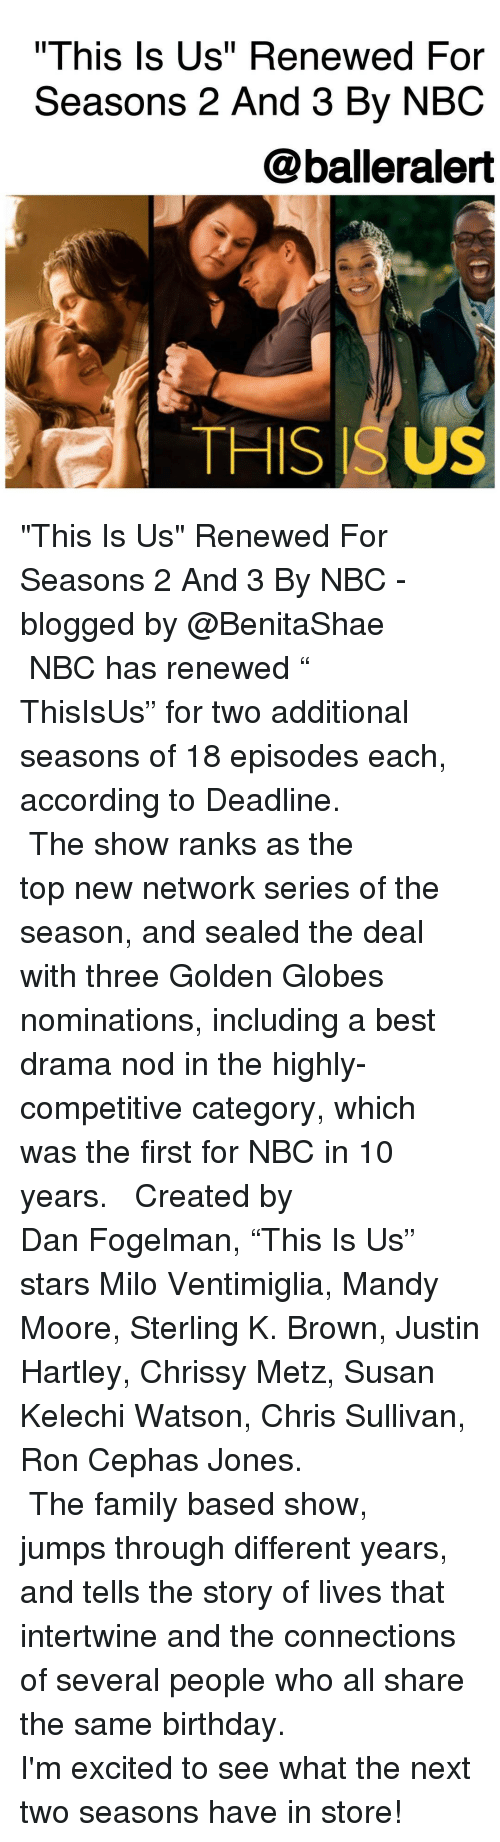 """Golden Globes: """"This Is Us"""" Renewed For  Seasons 2 And 3 By NBC  @balleralert  THIS ISUS """"This Is Us"""" Renewed For Seasons 2 And 3 By NBC -blogged by @BenitaShae ⠀⠀⠀⠀⠀⠀⠀⠀⠀ ⠀⠀⠀⠀⠀⠀⠀⠀⠀ NBC has renewed """" ThisIsUs"""" for two additional seasons of 18 episodes each, according to Deadline. ⠀⠀⠀⠀⠀⠀⠀⠀⠀ ⠀⠀⠀⠀⠀⠀⠀⠀⠀ The show ranks as the top new network series of the season, and sealed the deal with three Golden Globes nominations, including a best drama nod in the highly-competitive category, which was the first for NBC in 10 years. ⠀⠀⠀⠀⠀⠀⠀⠀⠀ ⠀⠀⠀⠀⠀⠀⠀⠀⠀ Created by Dan Fogelman, """"This Is Us"""" stars Milo Ventimiglia, Mandy Moore, Sterling K. Brown, Justin Hartley, Chrissy Metz, Susan Kelechi Watson, Chris Sullivan, Ron Cephas Jones. ⠀⠀⠀⠀⠀⠀⠀⠀⠀ ⠀⠀⠀⠀⠀⠀⠀⠀⠀ The family based show, jumps through different years, and tells the story of lives that intertwine and the connections of several people who all share the same birthday. ⠀⠀⠀⠀⠀⠀⠀⠀⠀ ⠀⠀⠀⠀⠀⠀⠀⠀⠀ I'm excited to see what the next two seasons have in store!"""